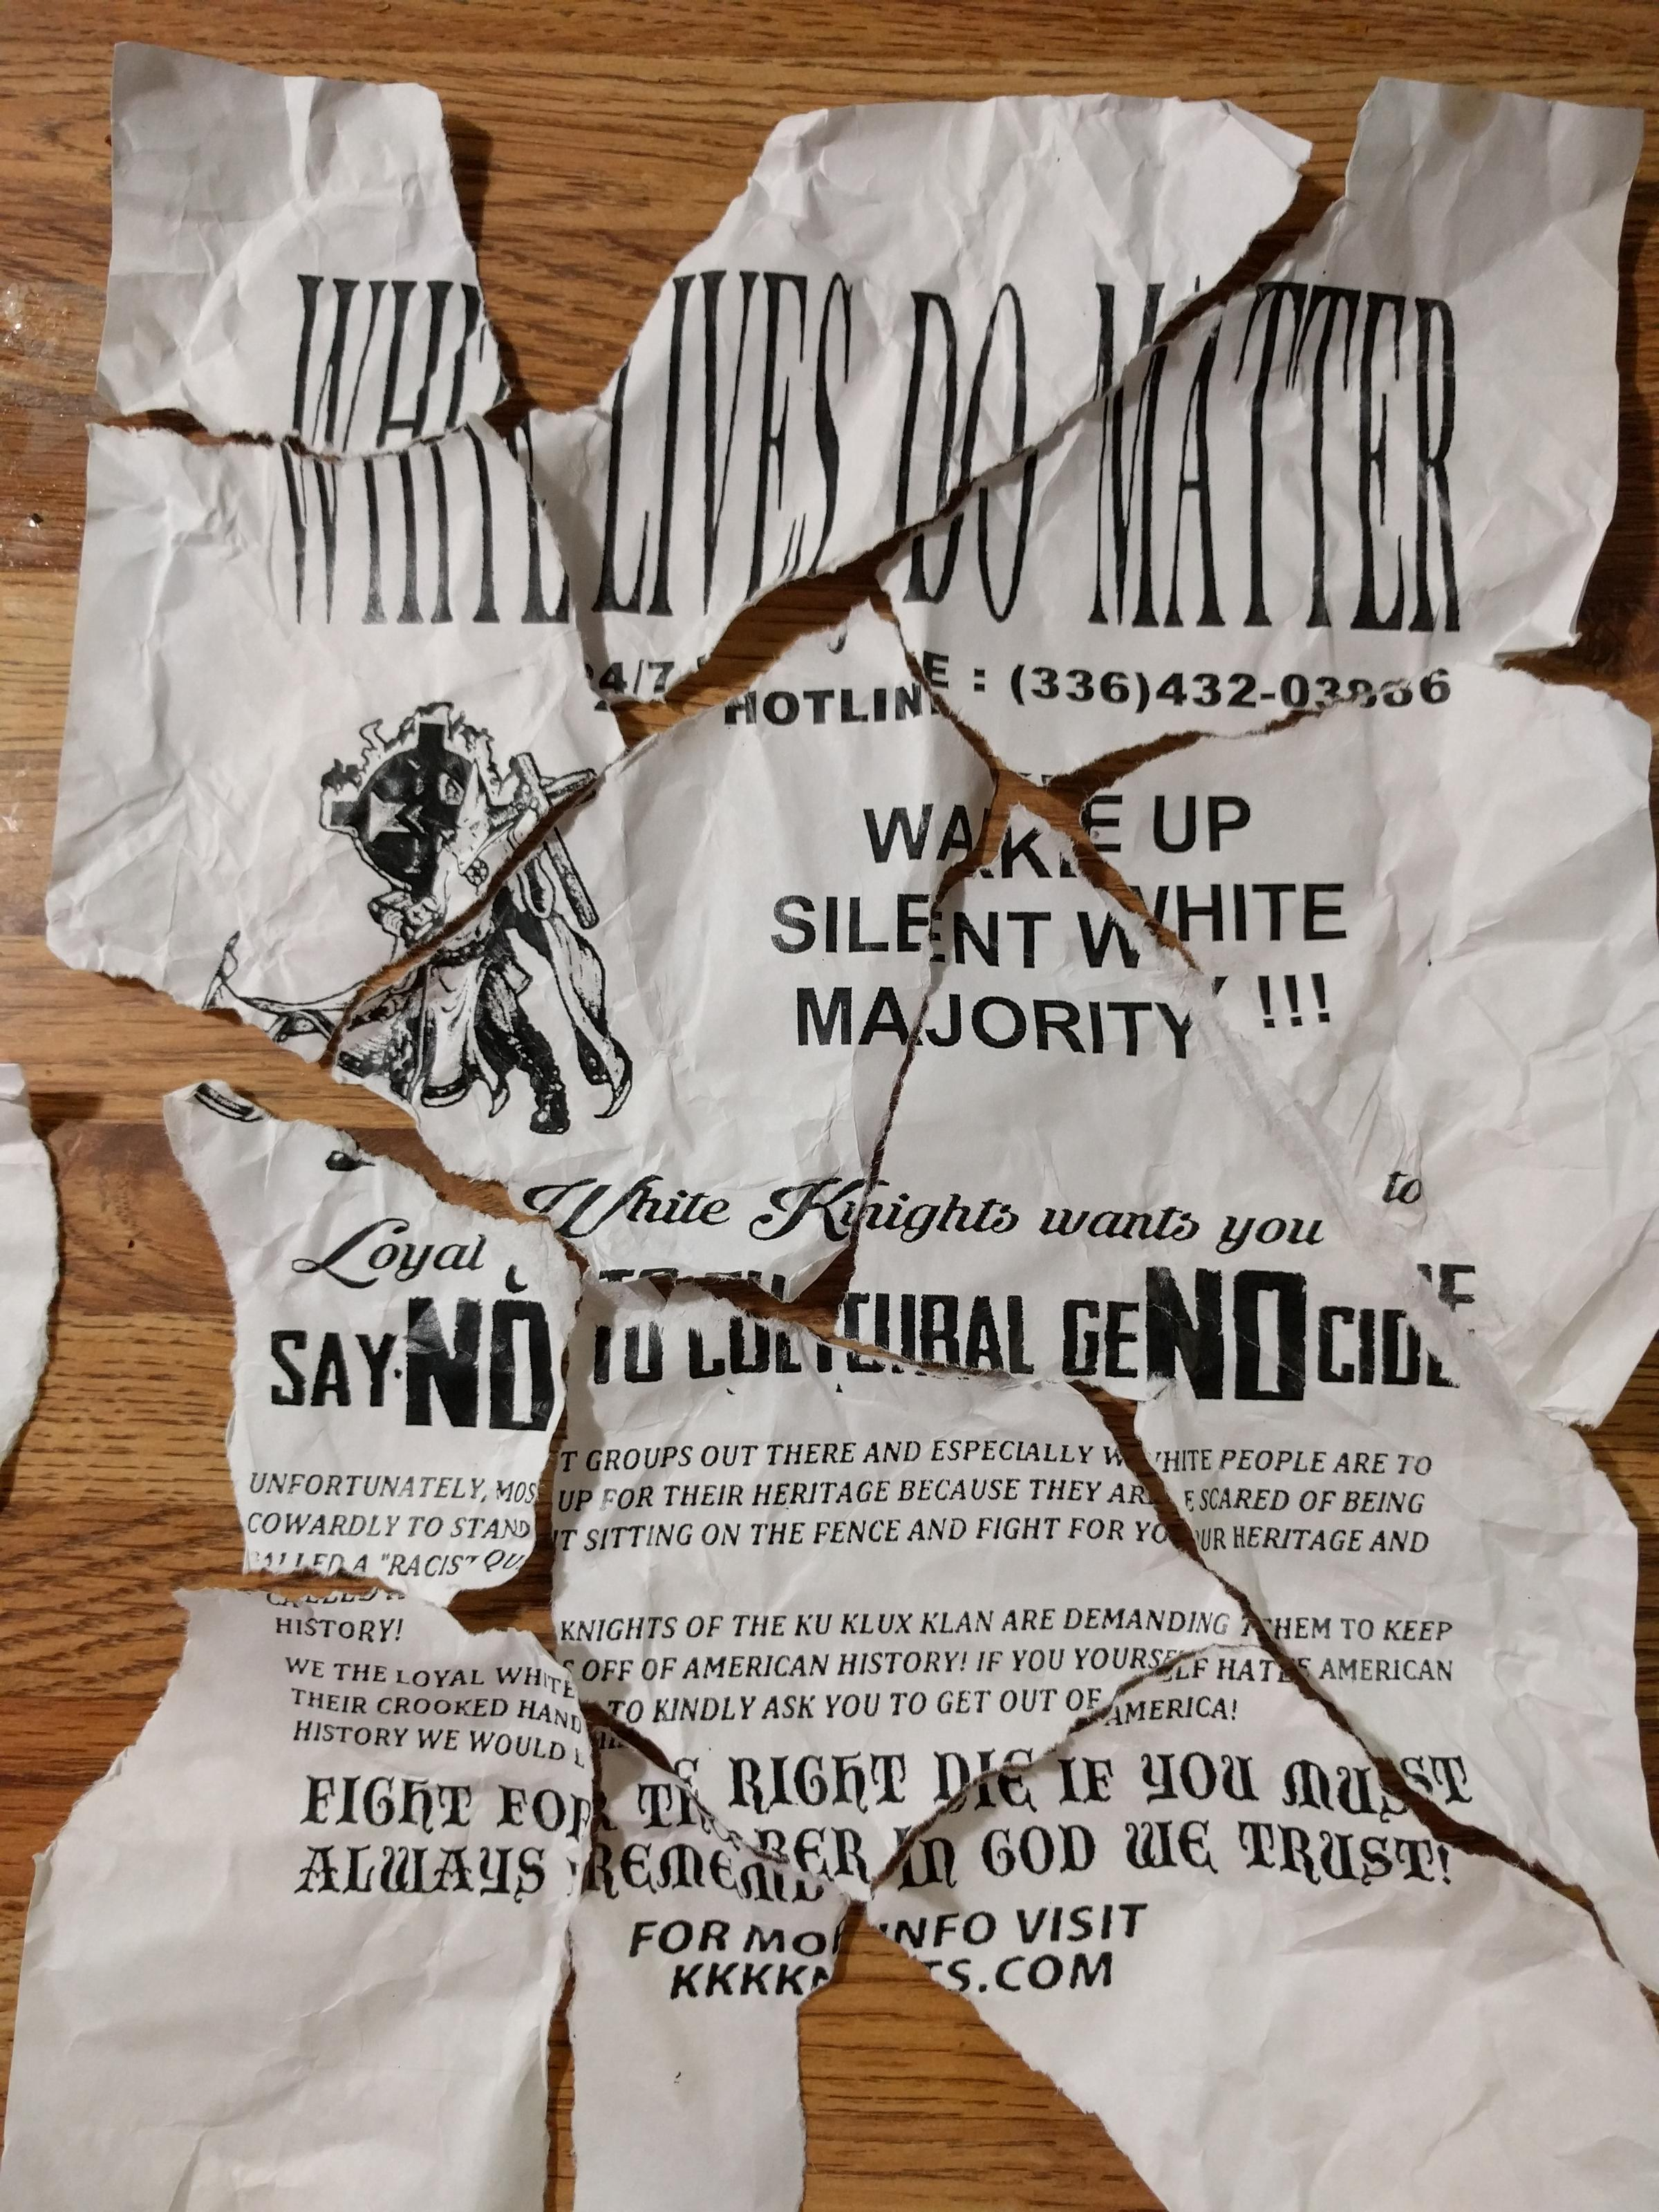 kkk recruitment letters circulate in murray wkms view slideshow 3 of 5